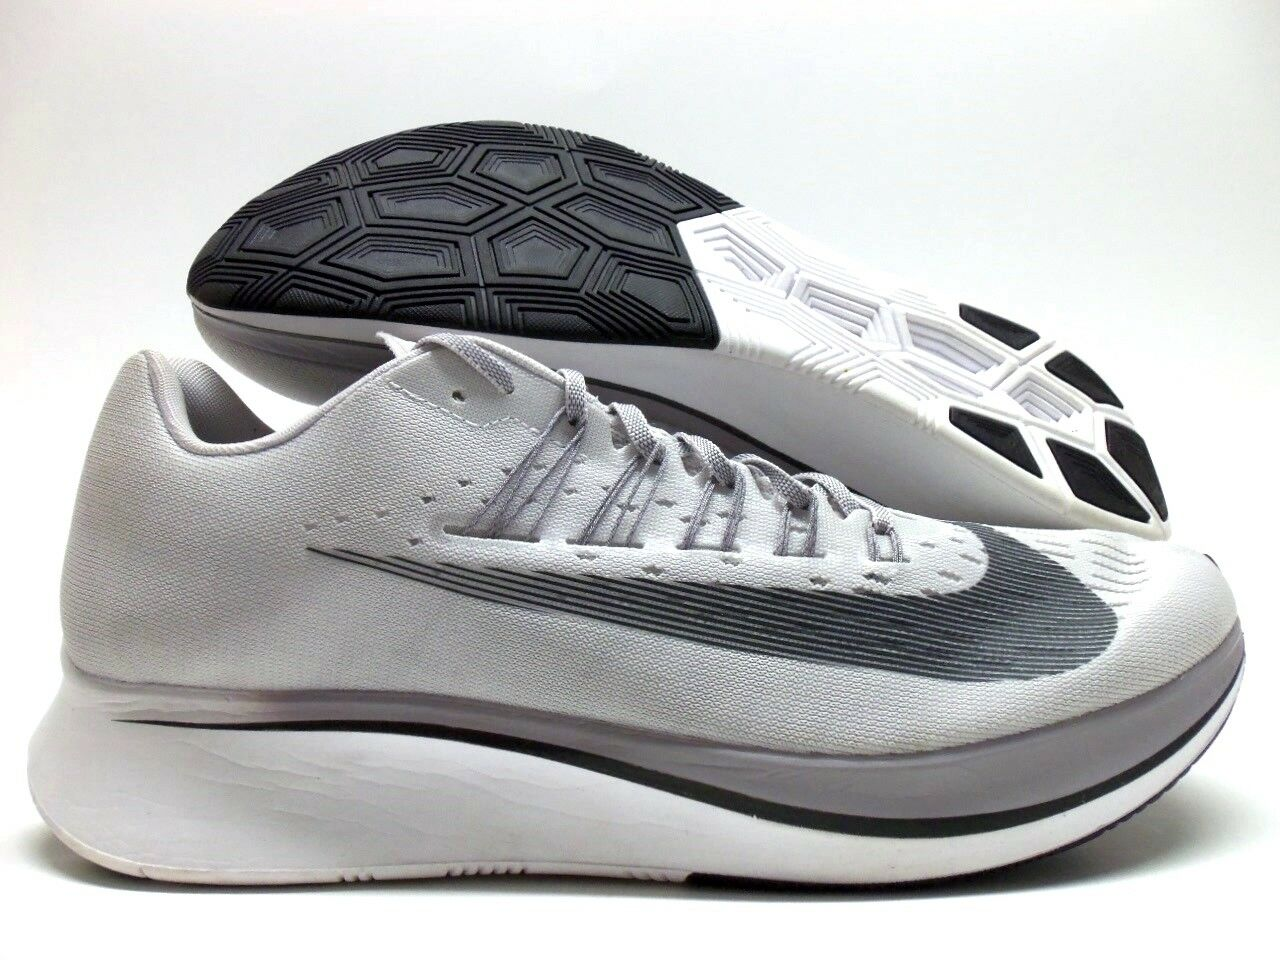 NIKE ZOOM FLY VAST GREY/ANTHRACITE SIZE MEN'S 13 Price reduction Seasonal clearance sale